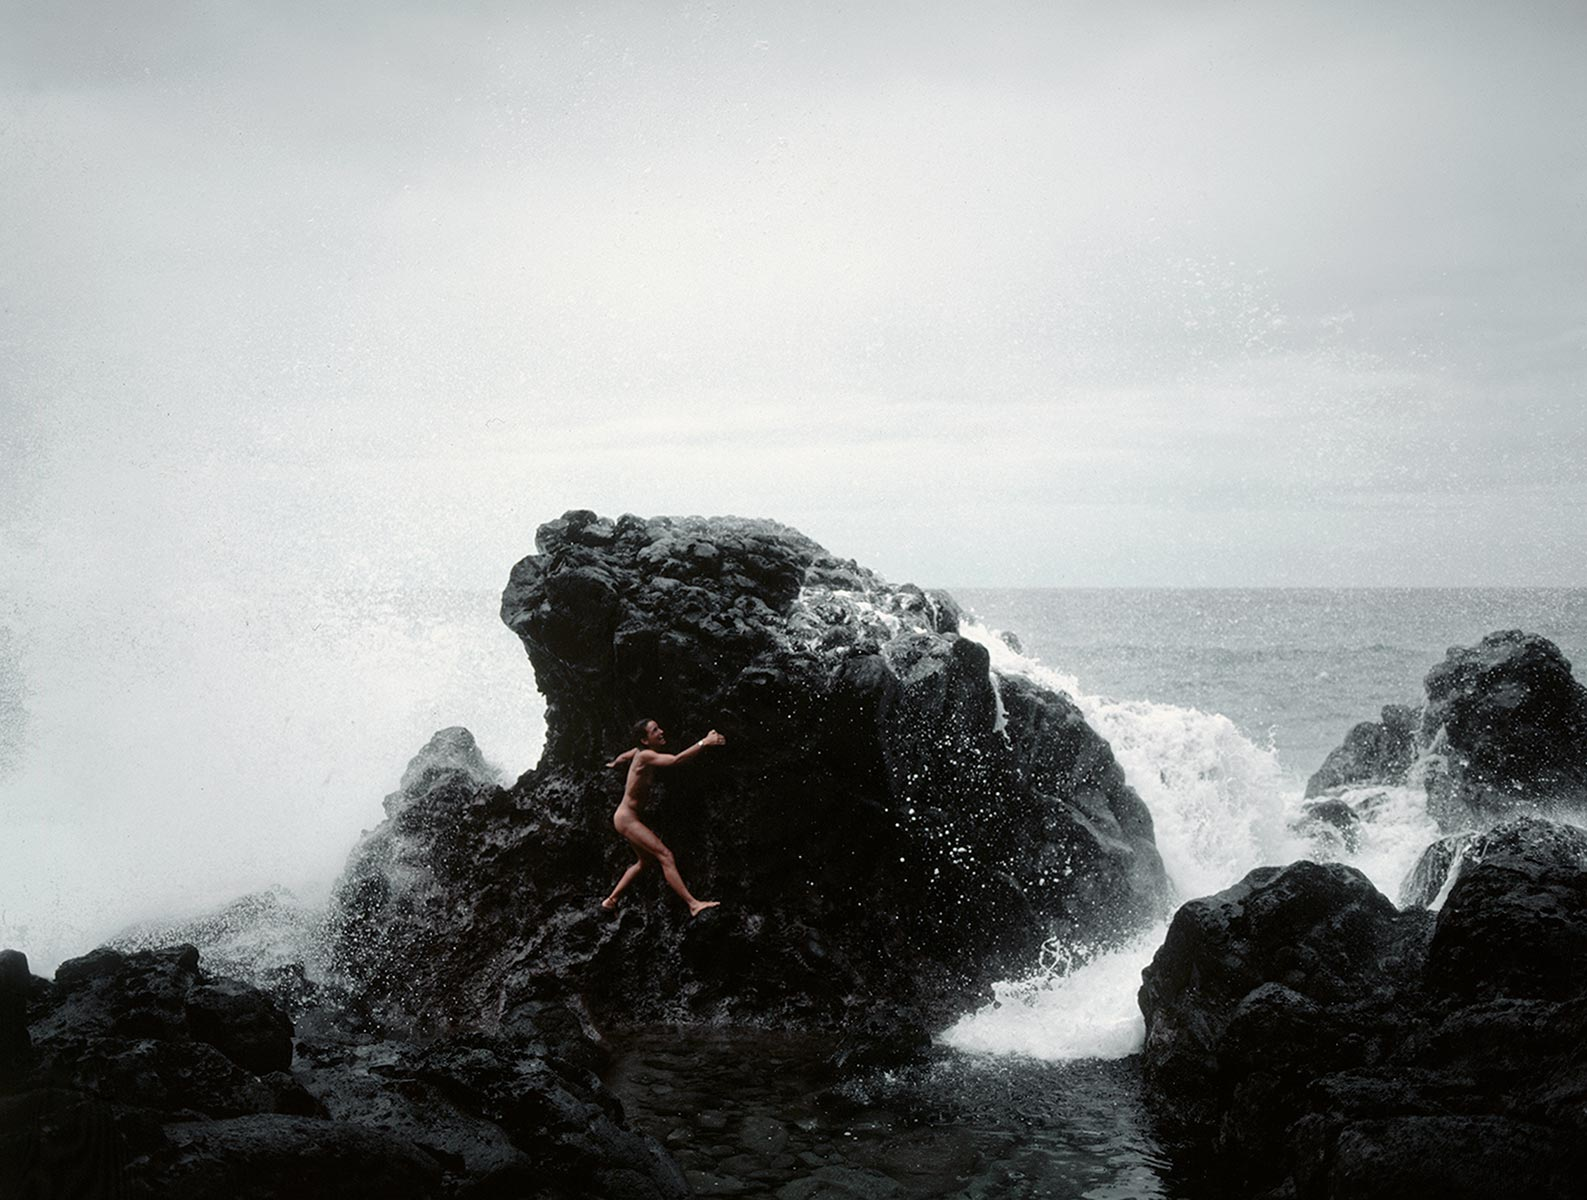 audrey_rocks_wave_maui_1